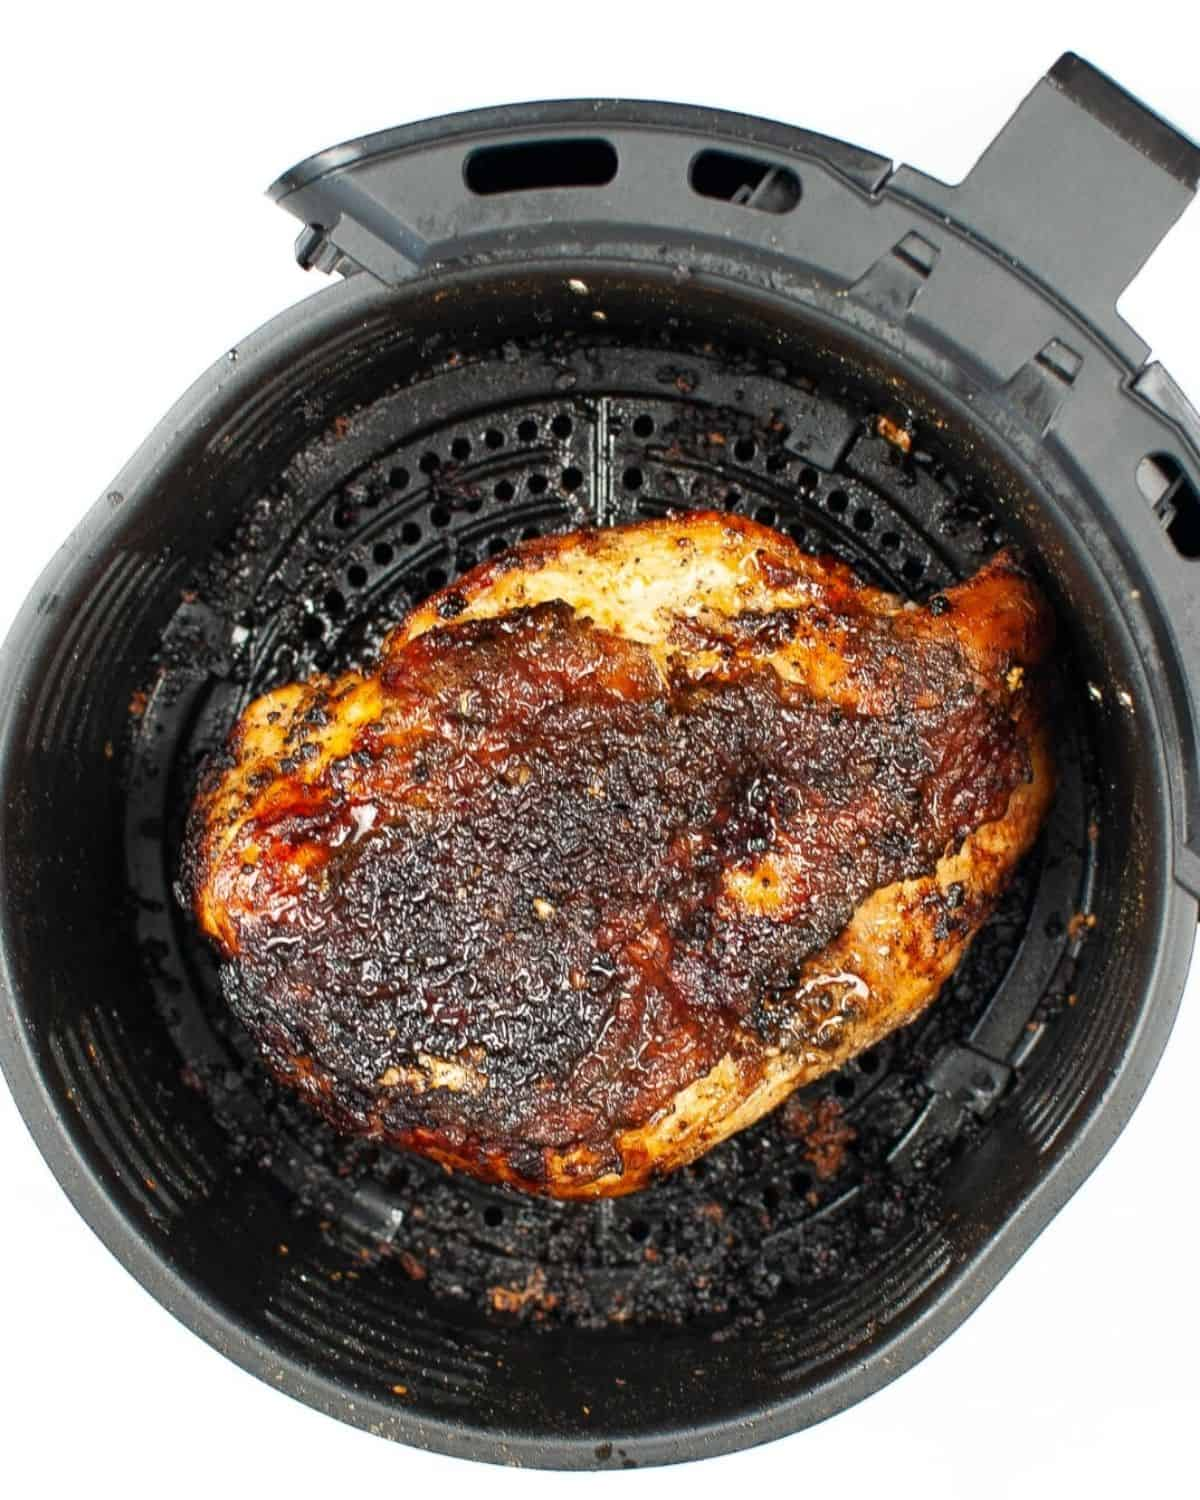 A cooked turkey in the air fryer with crispy brown golden skin.